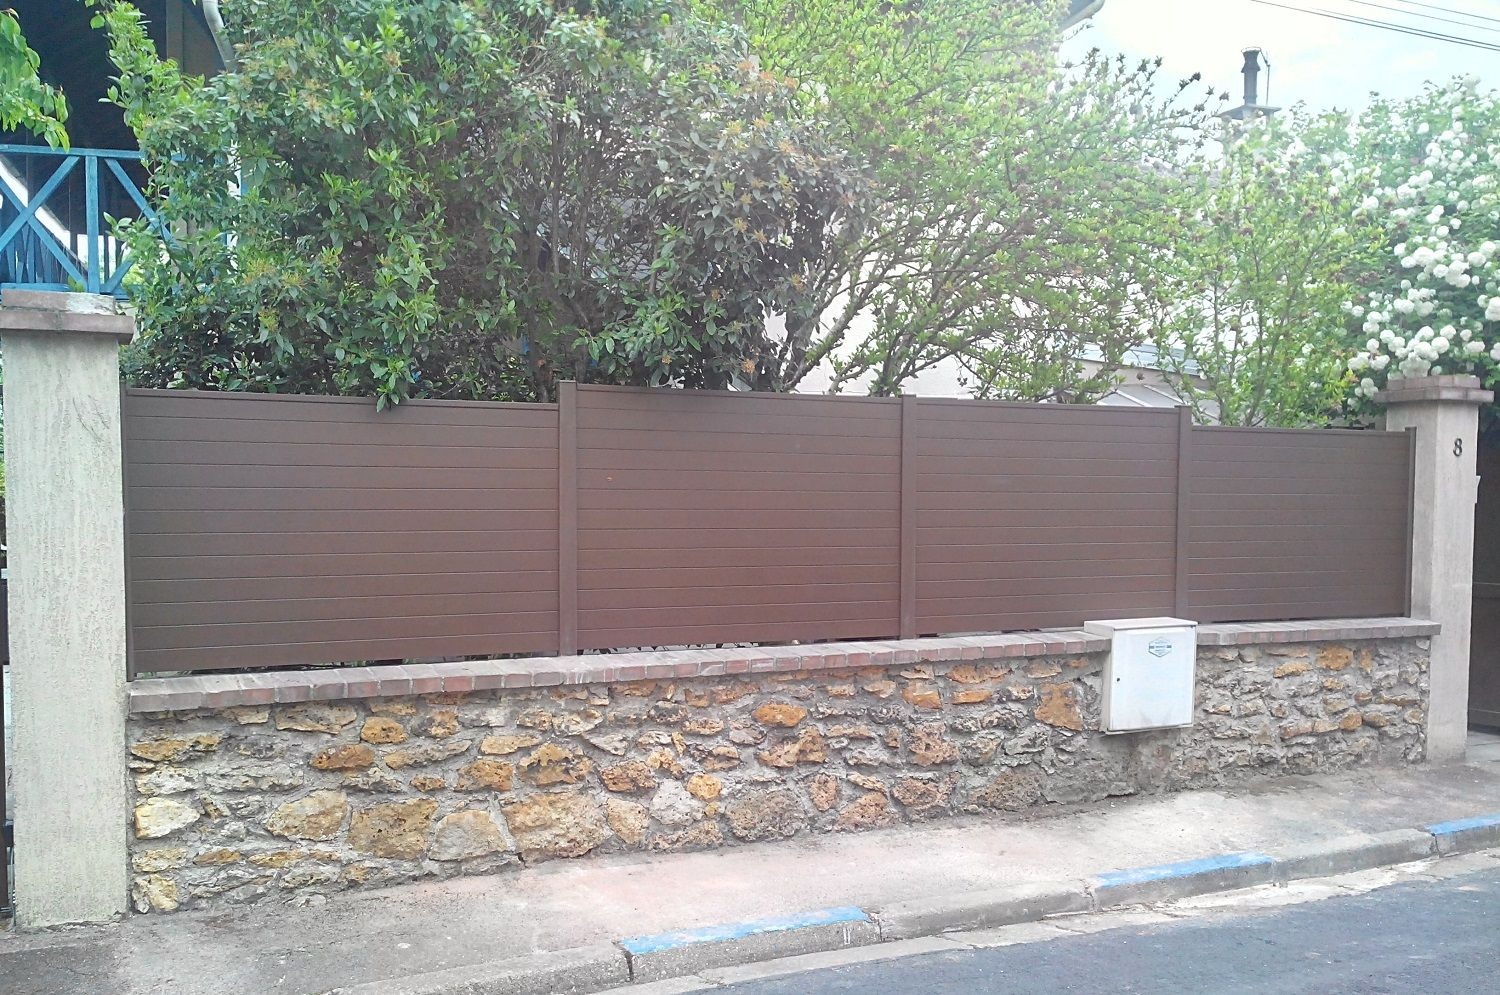 Cloture Aluminium Mimizan Cloture Alu Cloture Aluminium Cloture